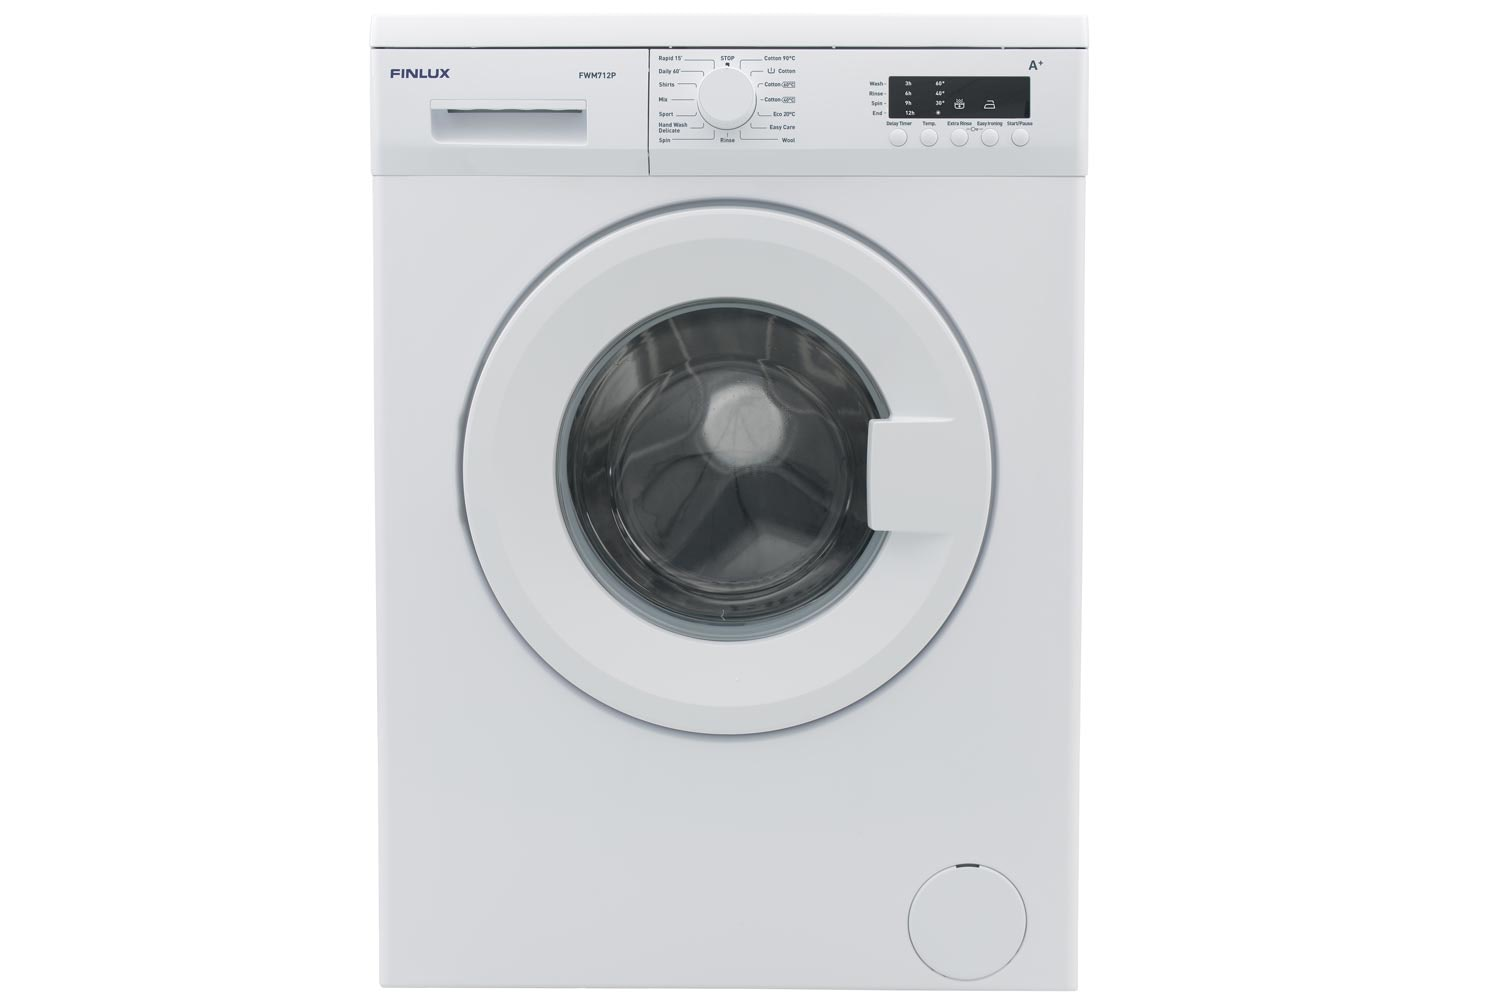 washing machines your washing machine superstore ireland kenmore parts washing machine finlux 7kg washing machine fwm712p